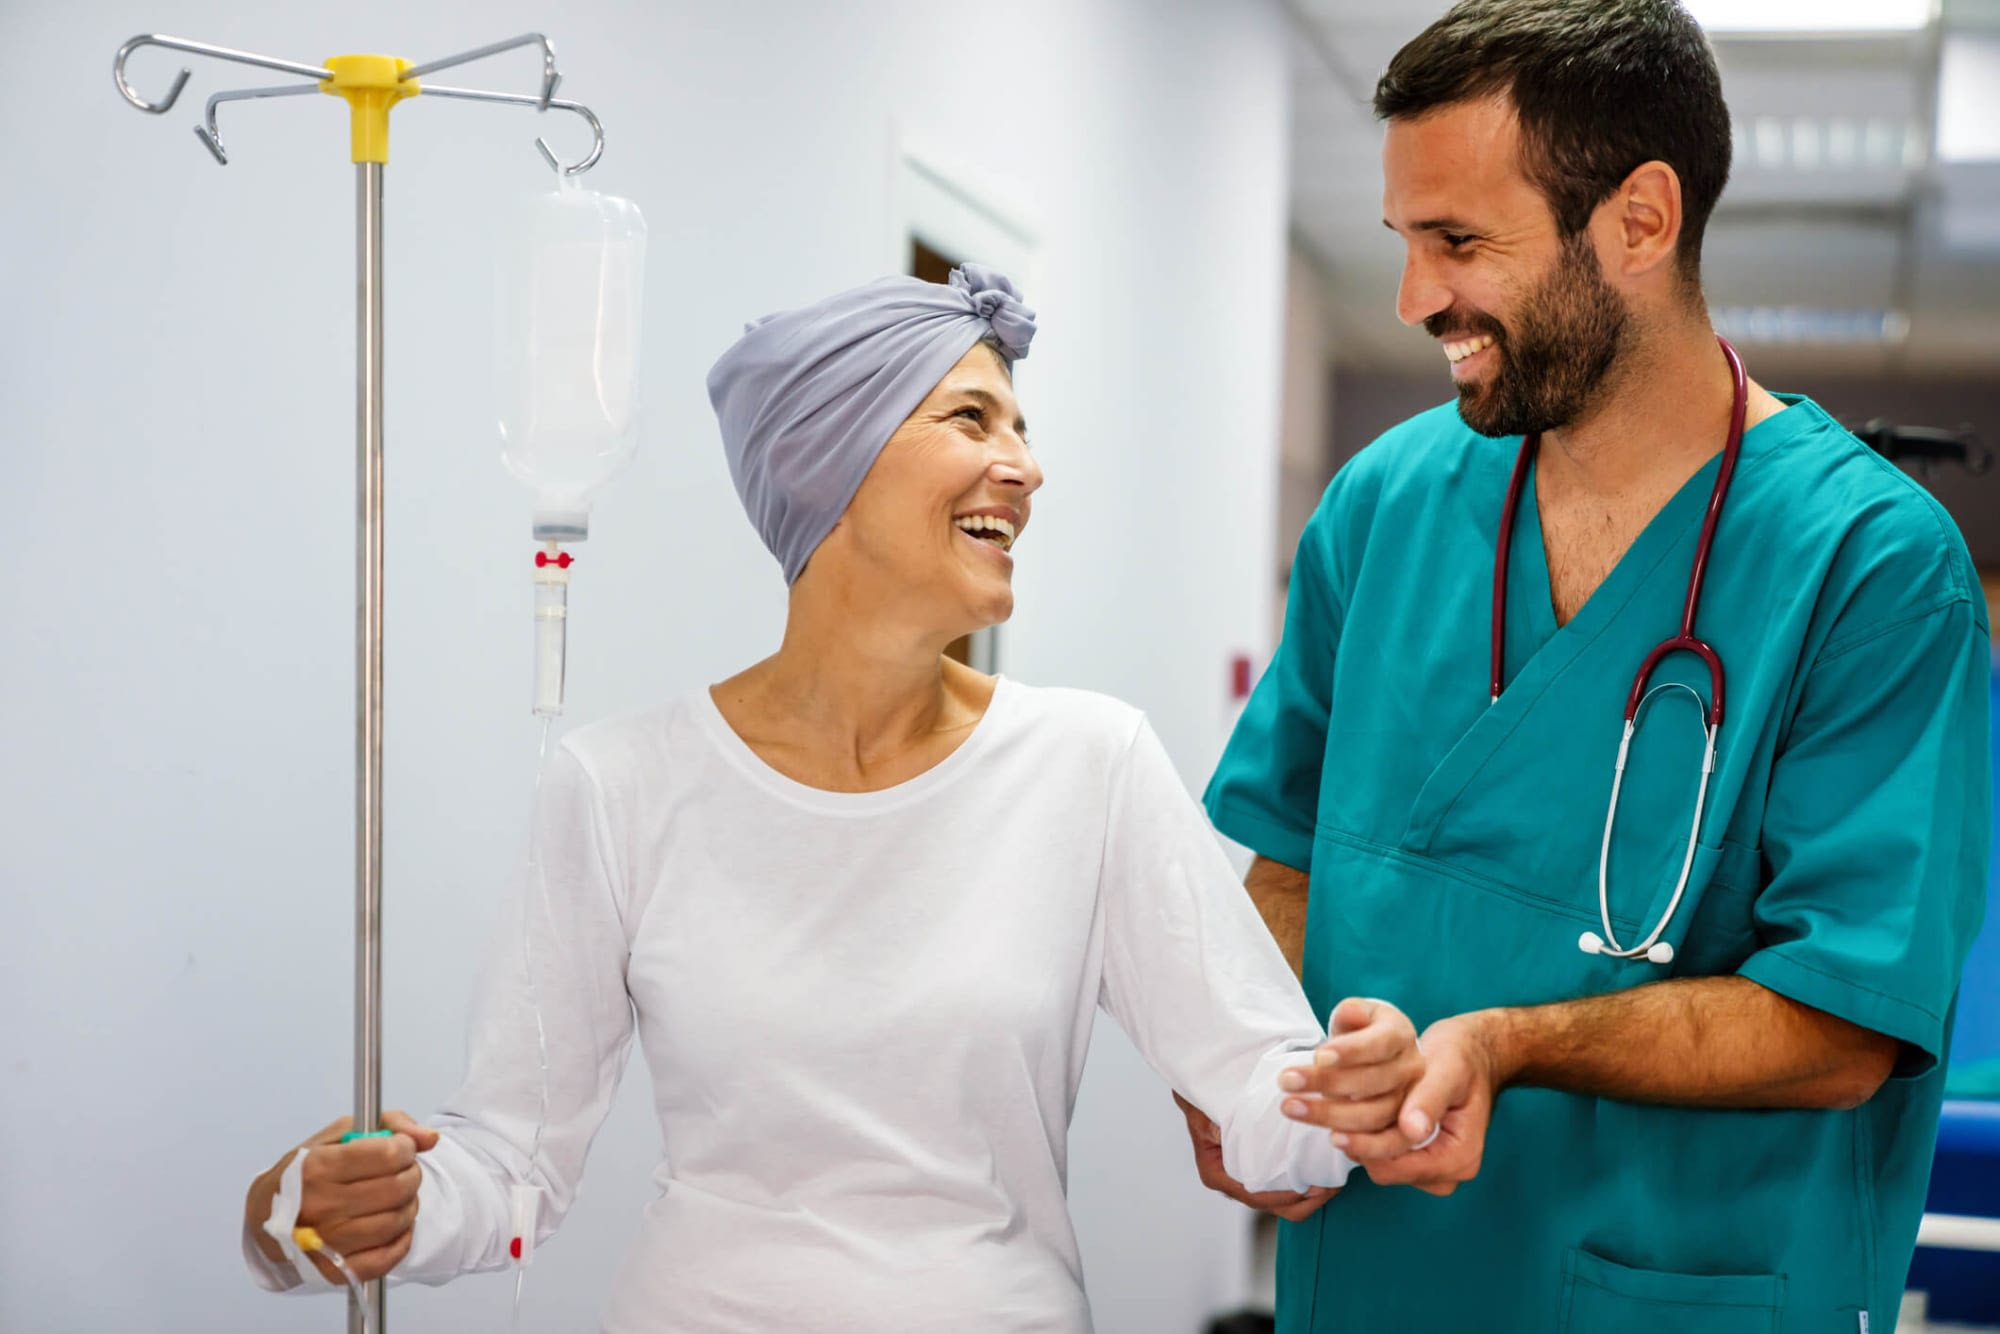 Male nurse assisting an oncology patient as she walks down a hospital hallway.